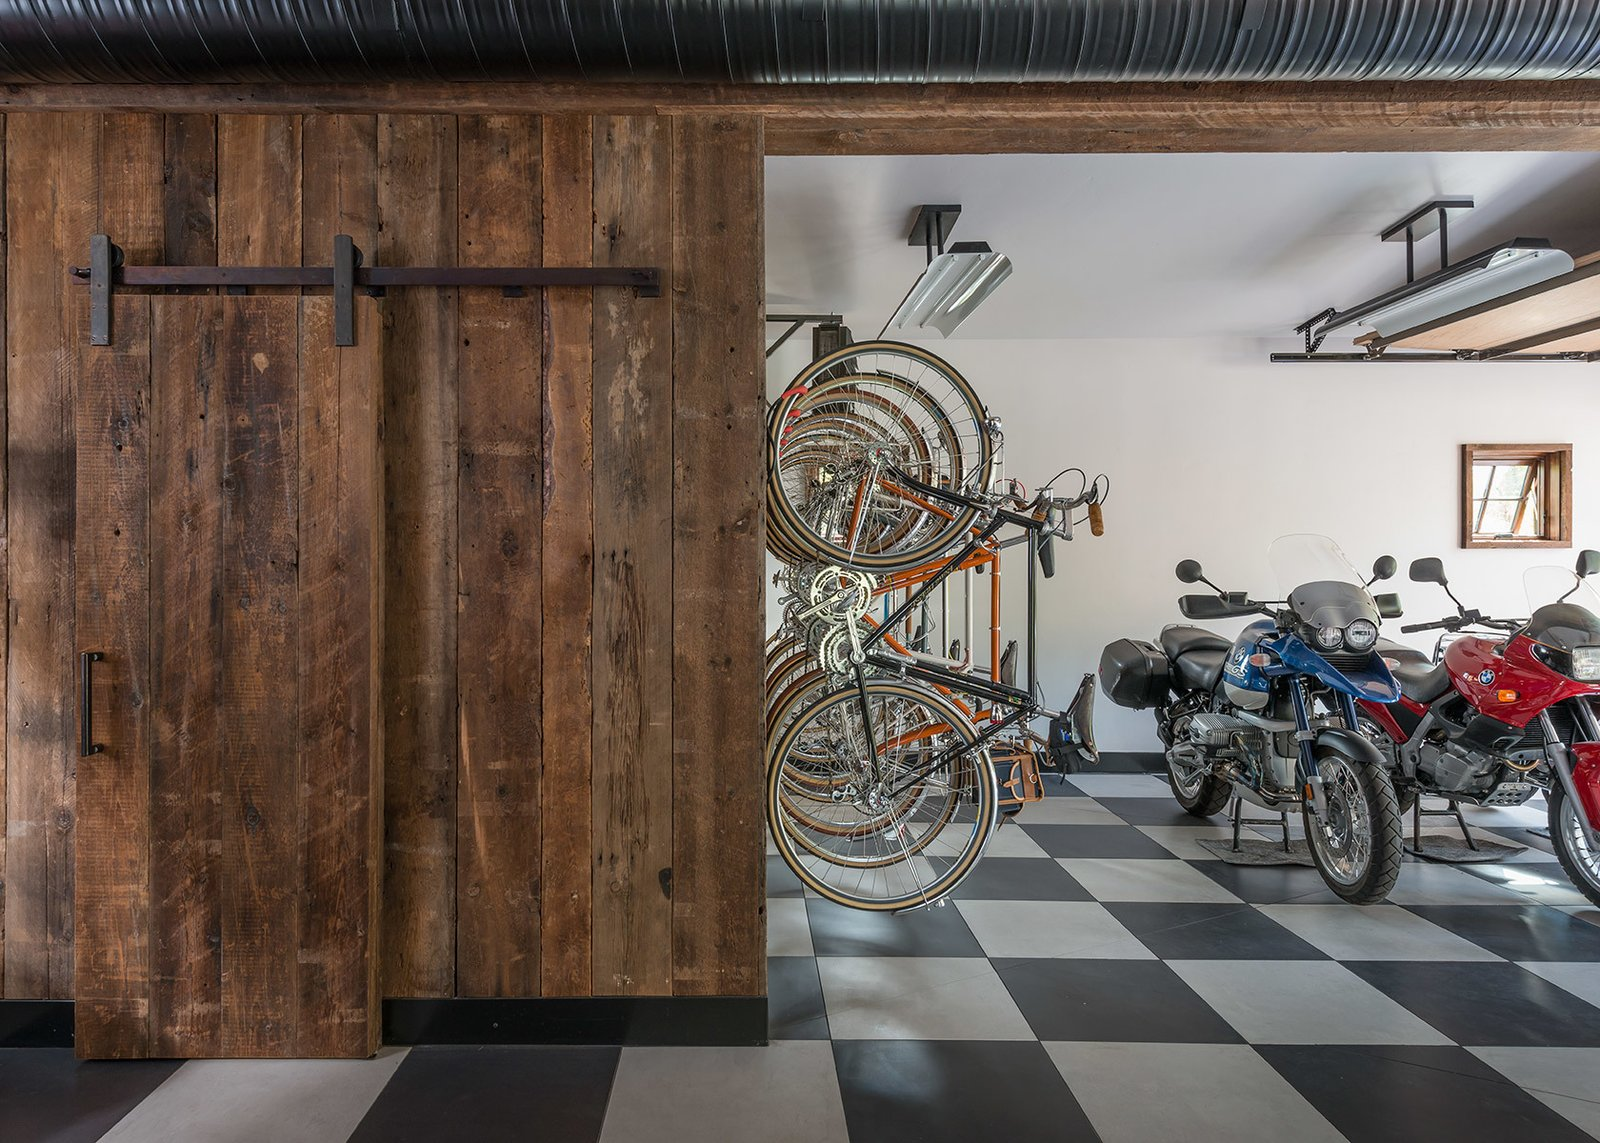 Garage and Storage Room Type This garage space uses iconic checkerboard floor tiles to contrast the rustic barn door that provides entry to the rest of The Barn.  Photo 5 of 8 in A Guest Barn in Jackson, Wyoming, Fuses Modern and Rustic Elements